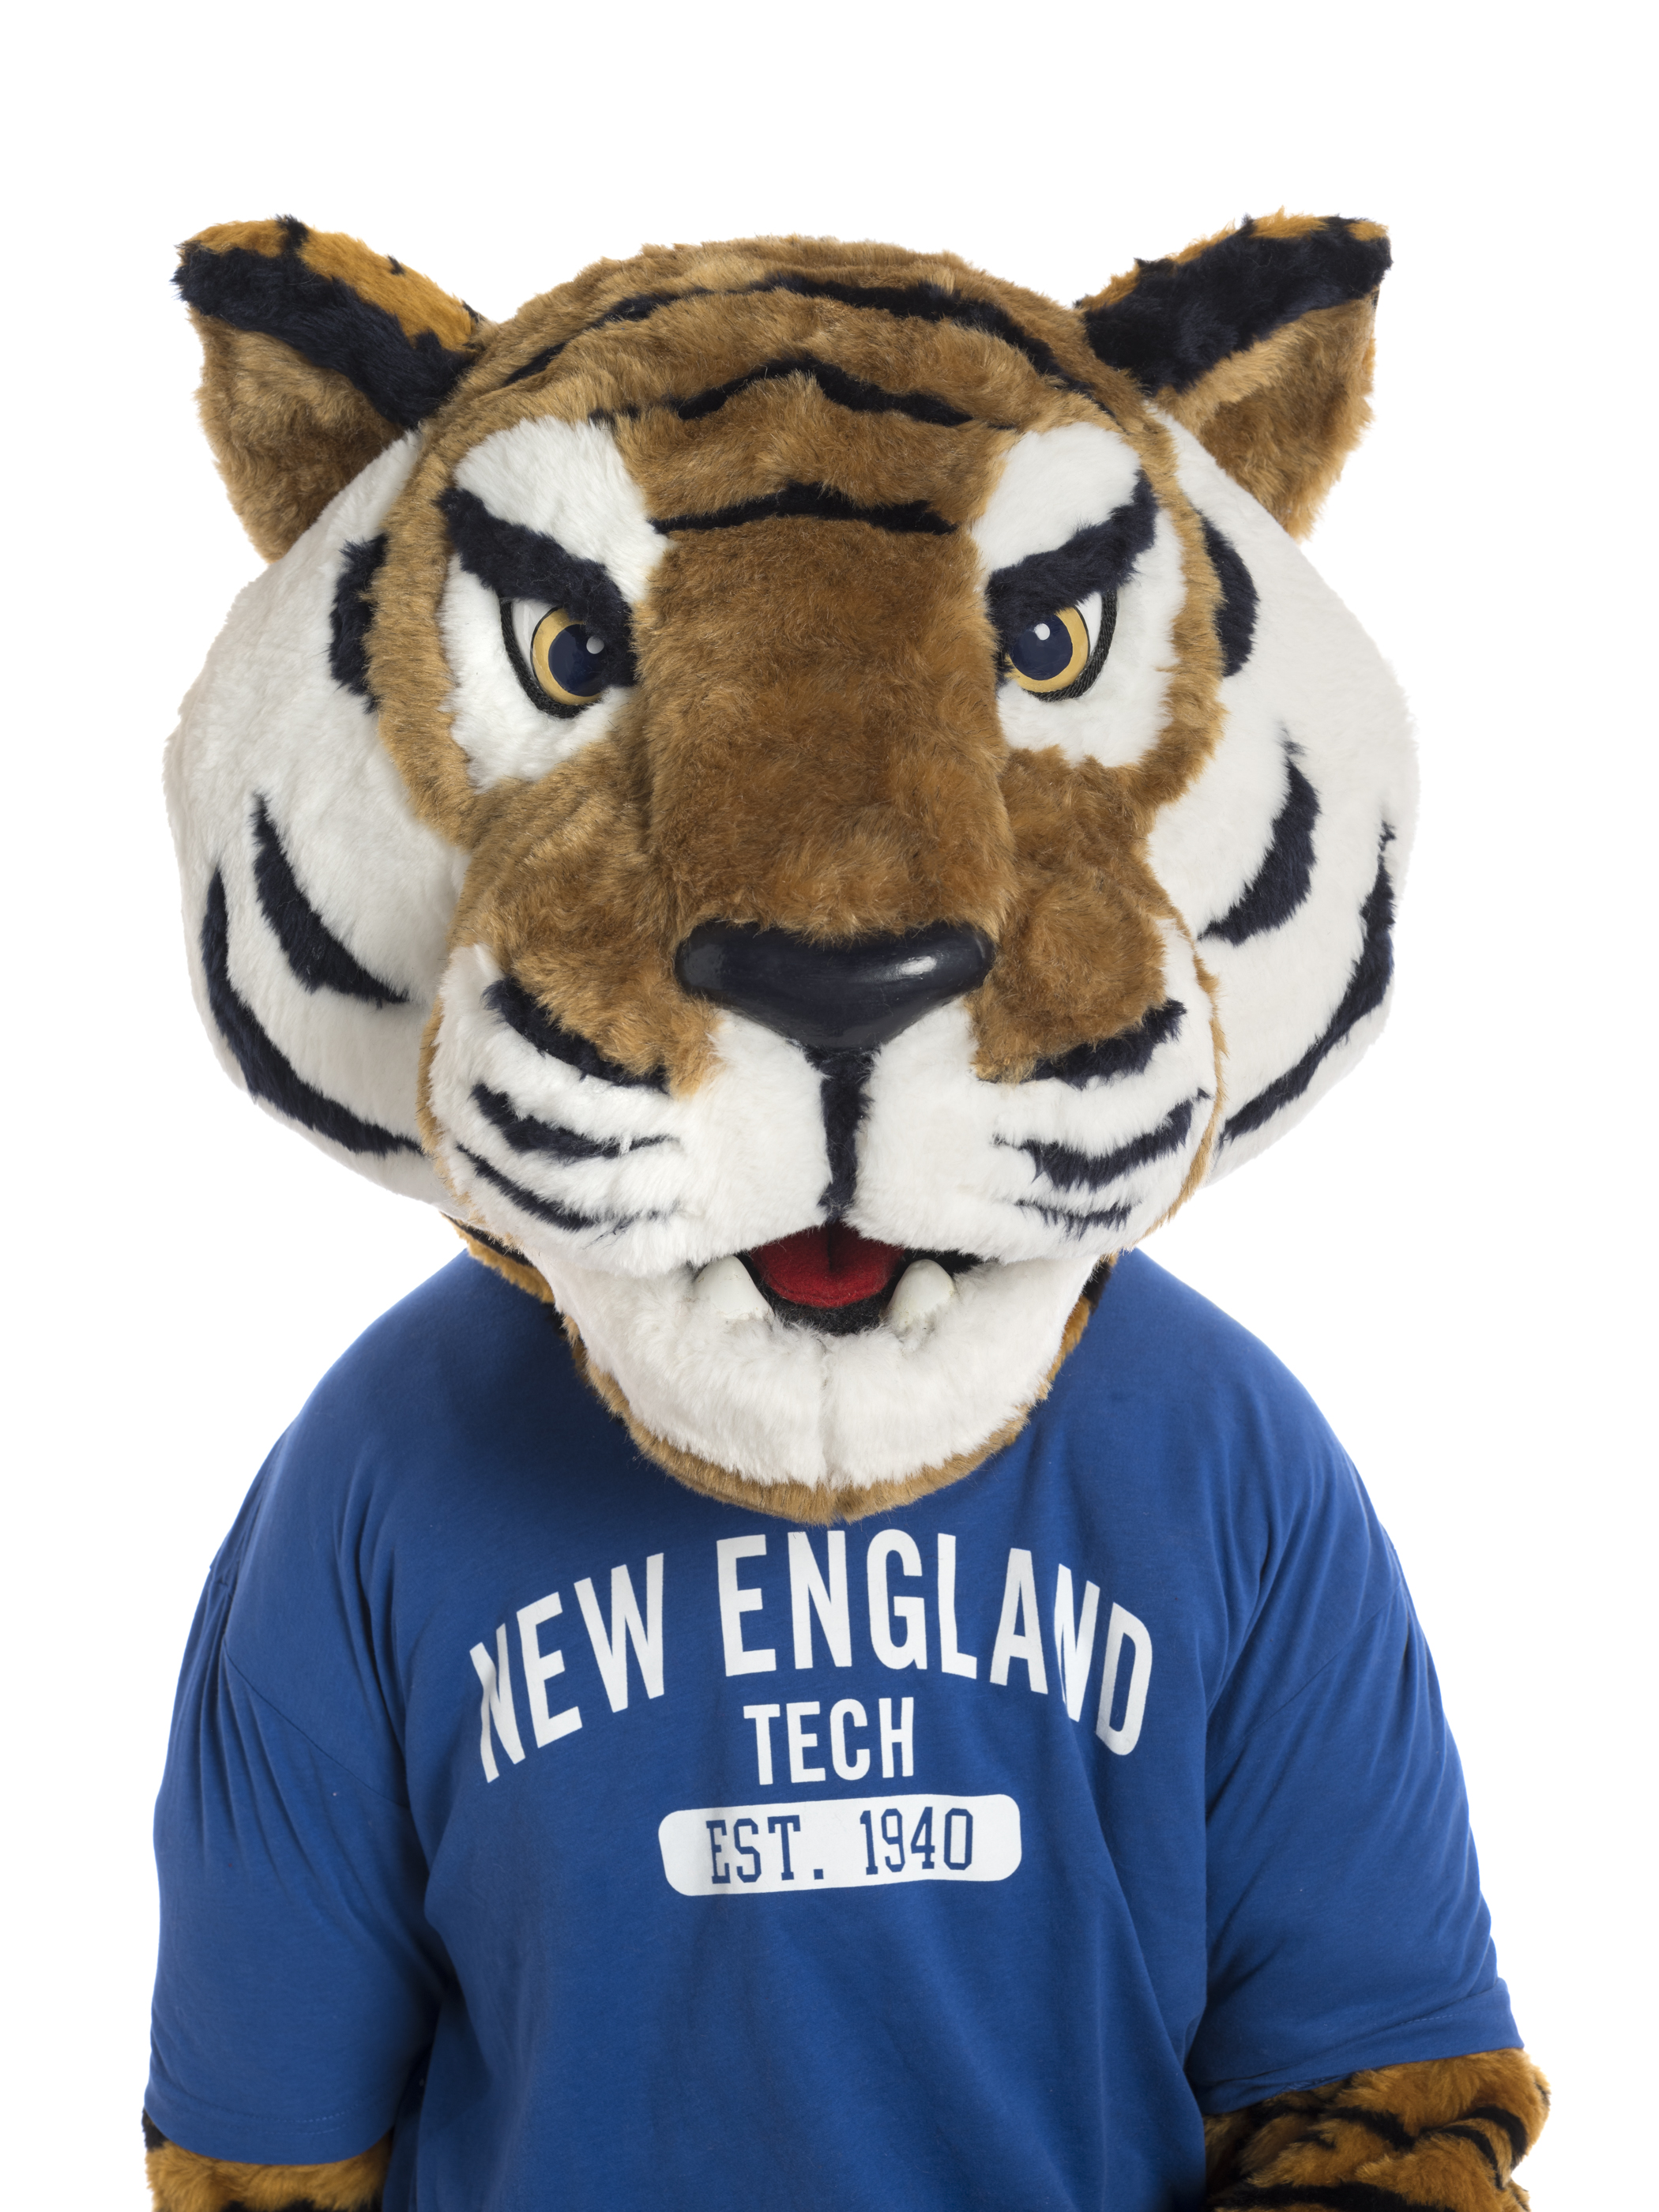 New England Institute of Tech